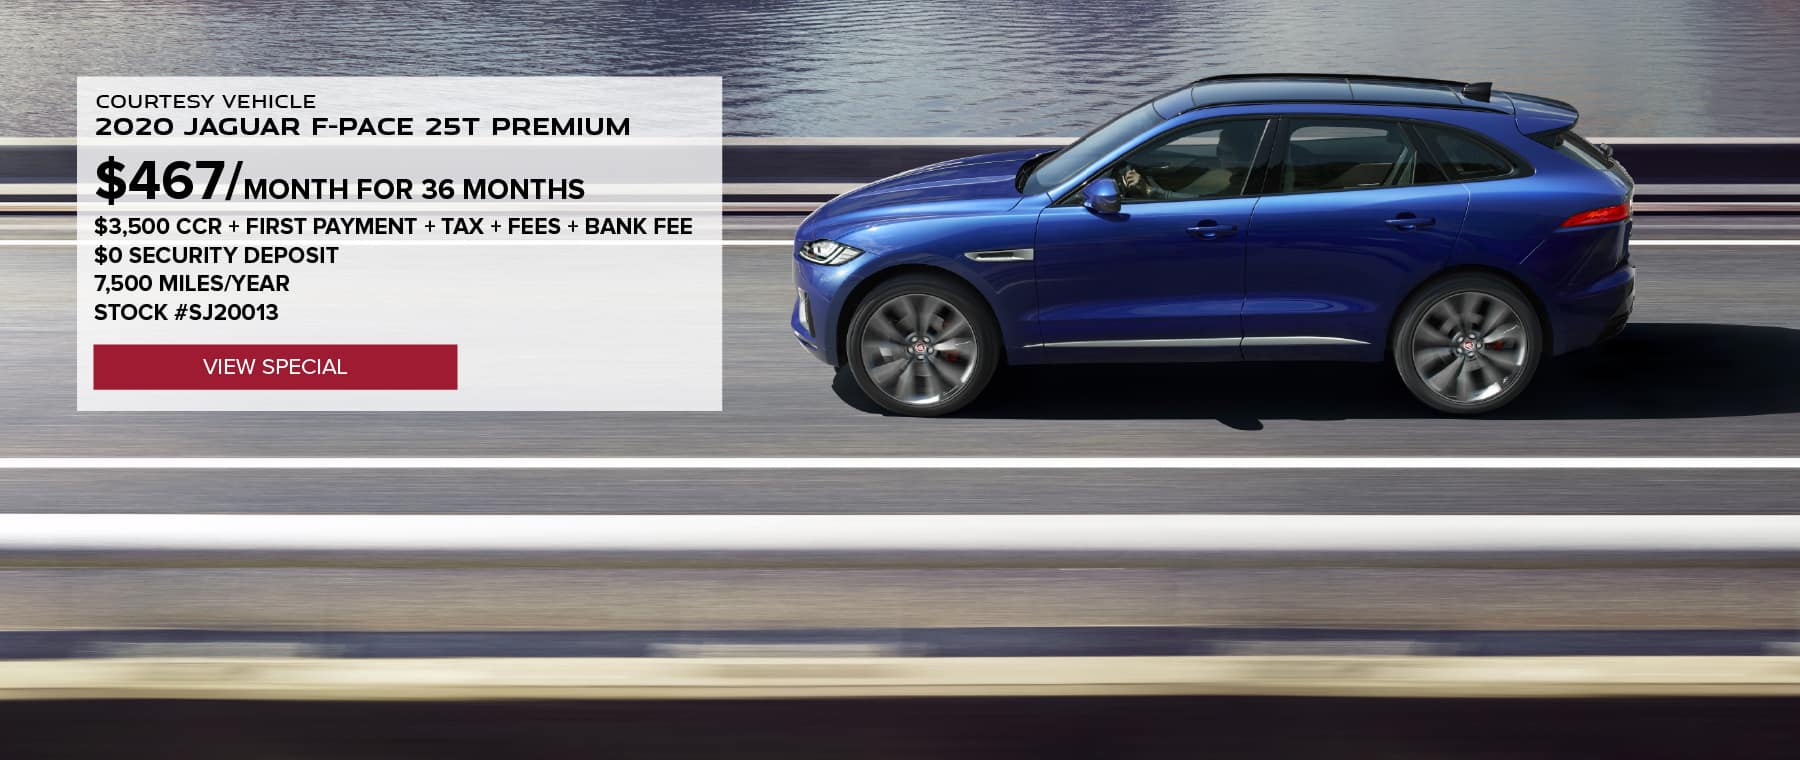 COURTESY VEHICLE. 2020 JAGUAR F-PACE 25T PREMIUM. $467 PER MONTH FOR 36 MONTHS. $3,500 CCR + FIRST PAYMENT + TAX + FEES + BANK FEE. $0 SECURITY DEPOSIT. 7,500 MILES PER YEAR. STOCK #SJ20013. VIEW SPECIAL. BLUE JAGUAR F-PACE DRIVING DOWN ROAD IN CITY LAKE.